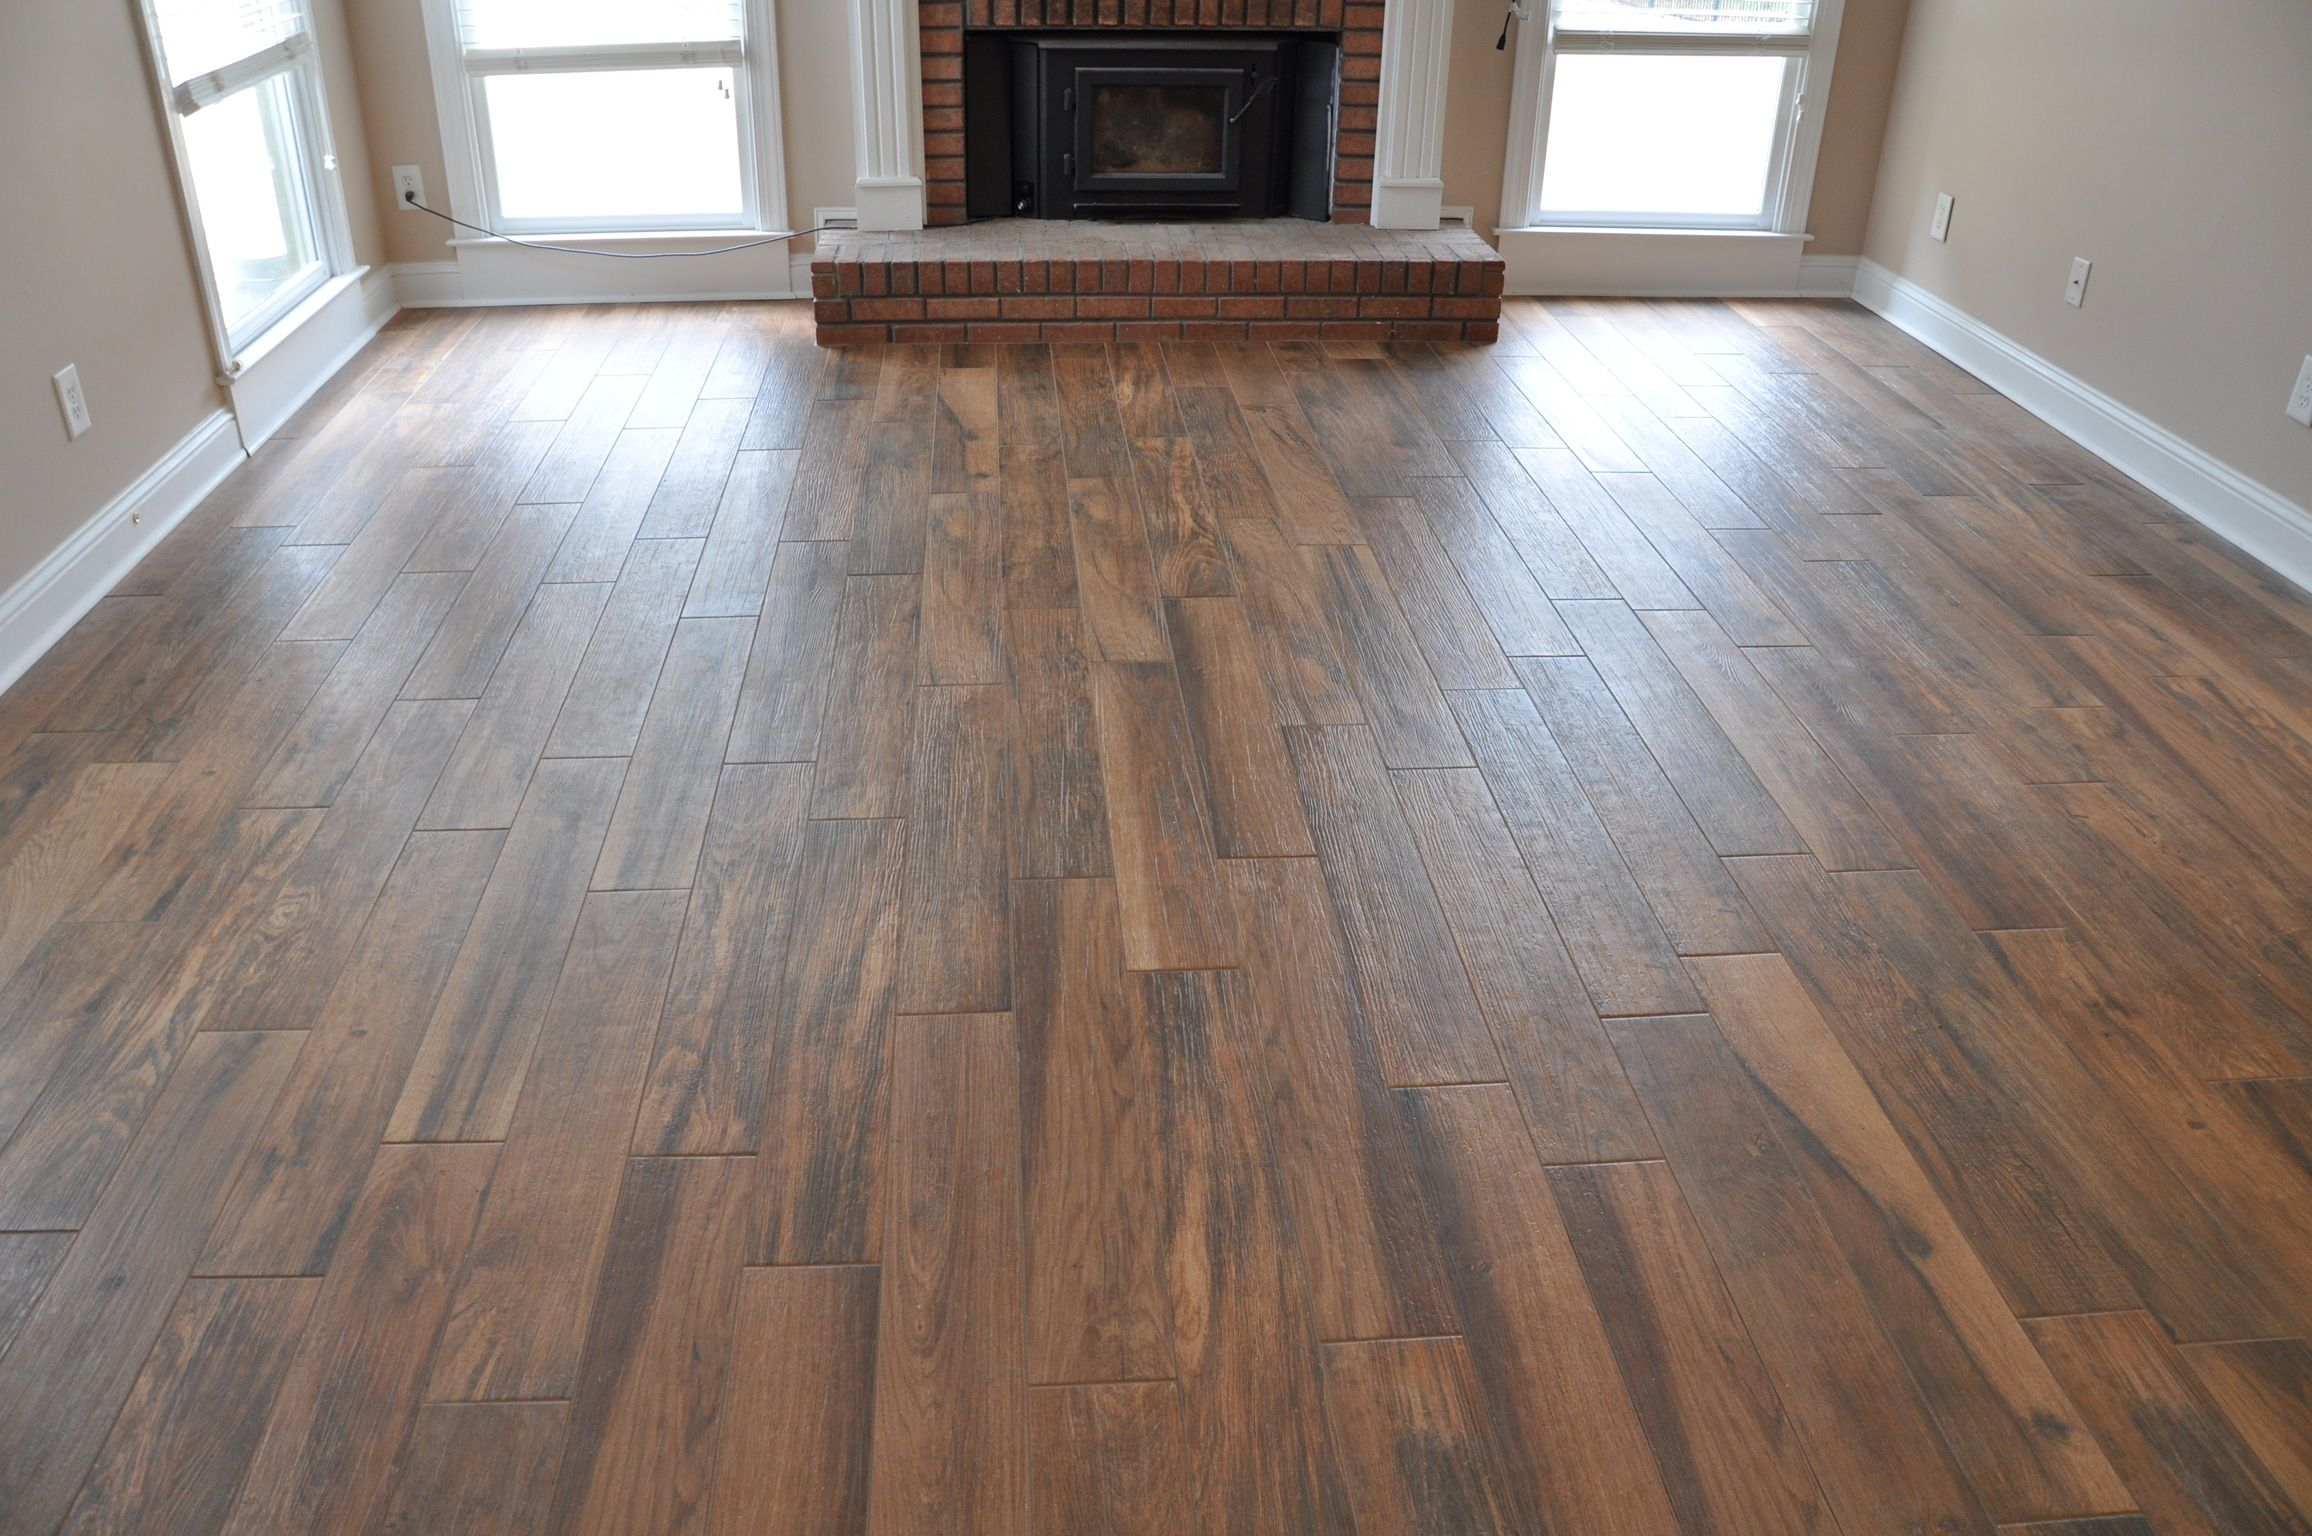 Wood look porcelain tile google search flooring pinterest wood look porcelain tile google search dailygadgetfo Image collections